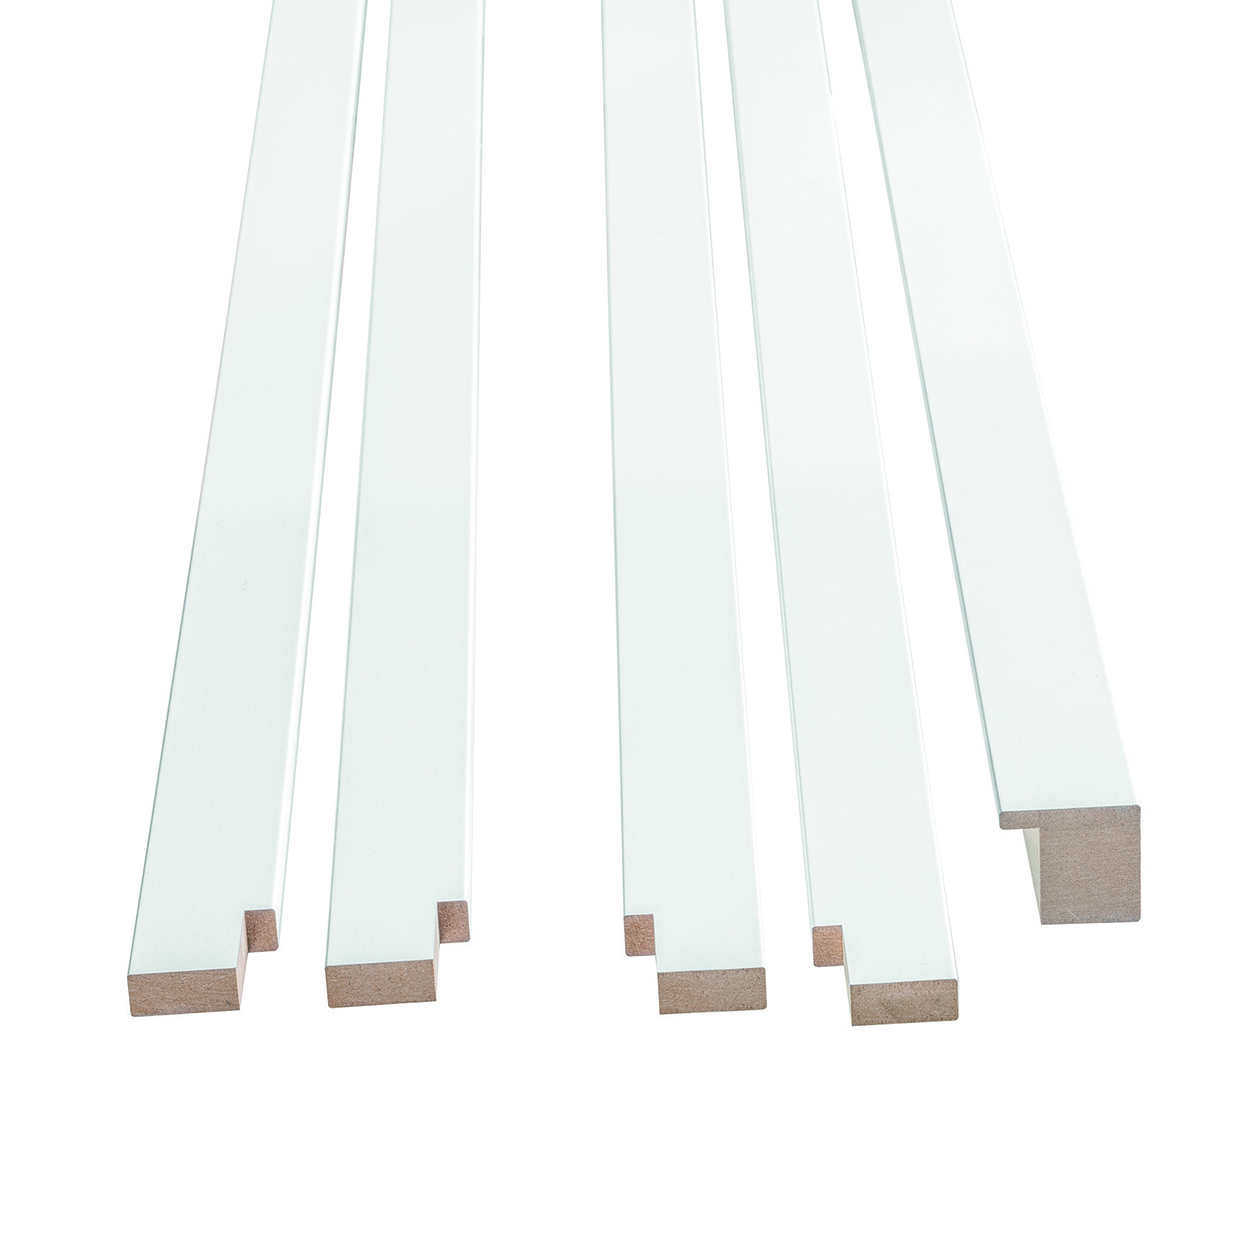 This is a product image of the Rocket Door Frame jambs.